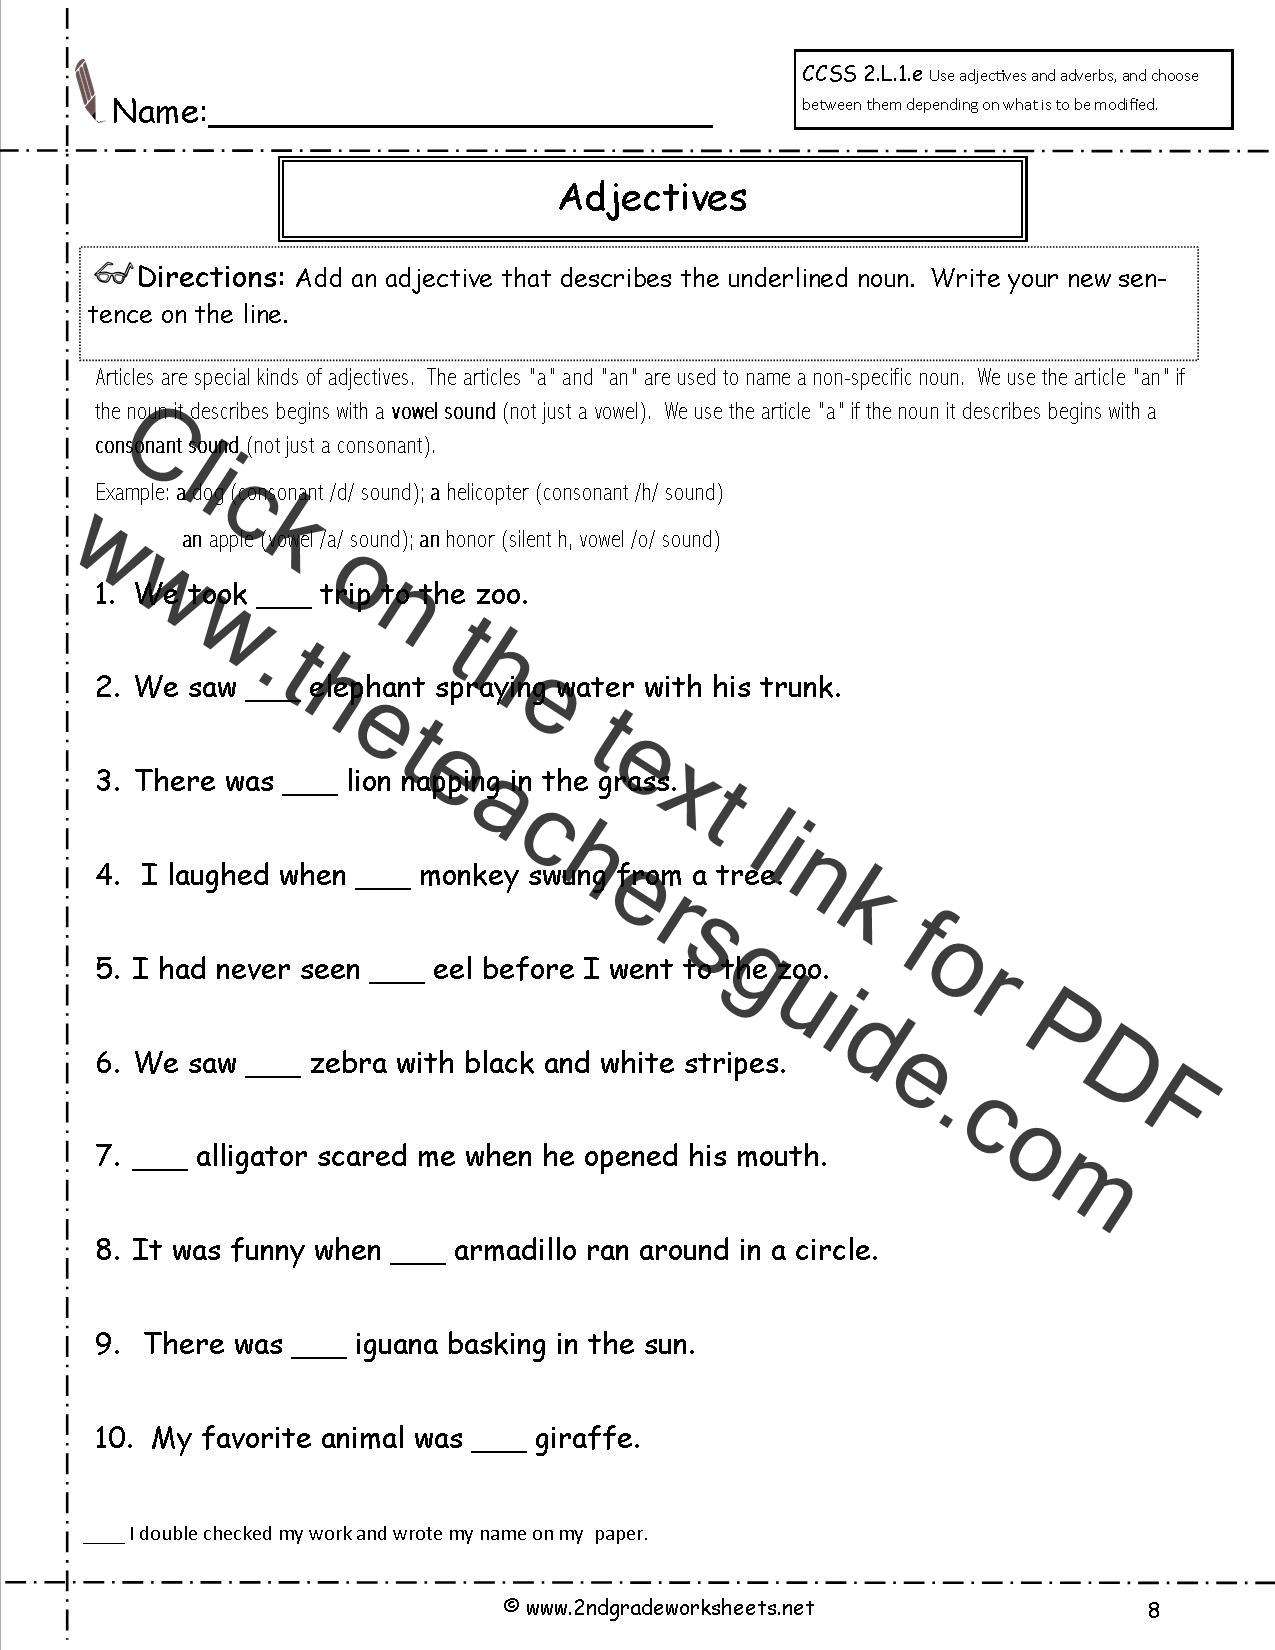 Free LanguageGrammar Worksheets and Printouts – Compound Nouns Worksheet